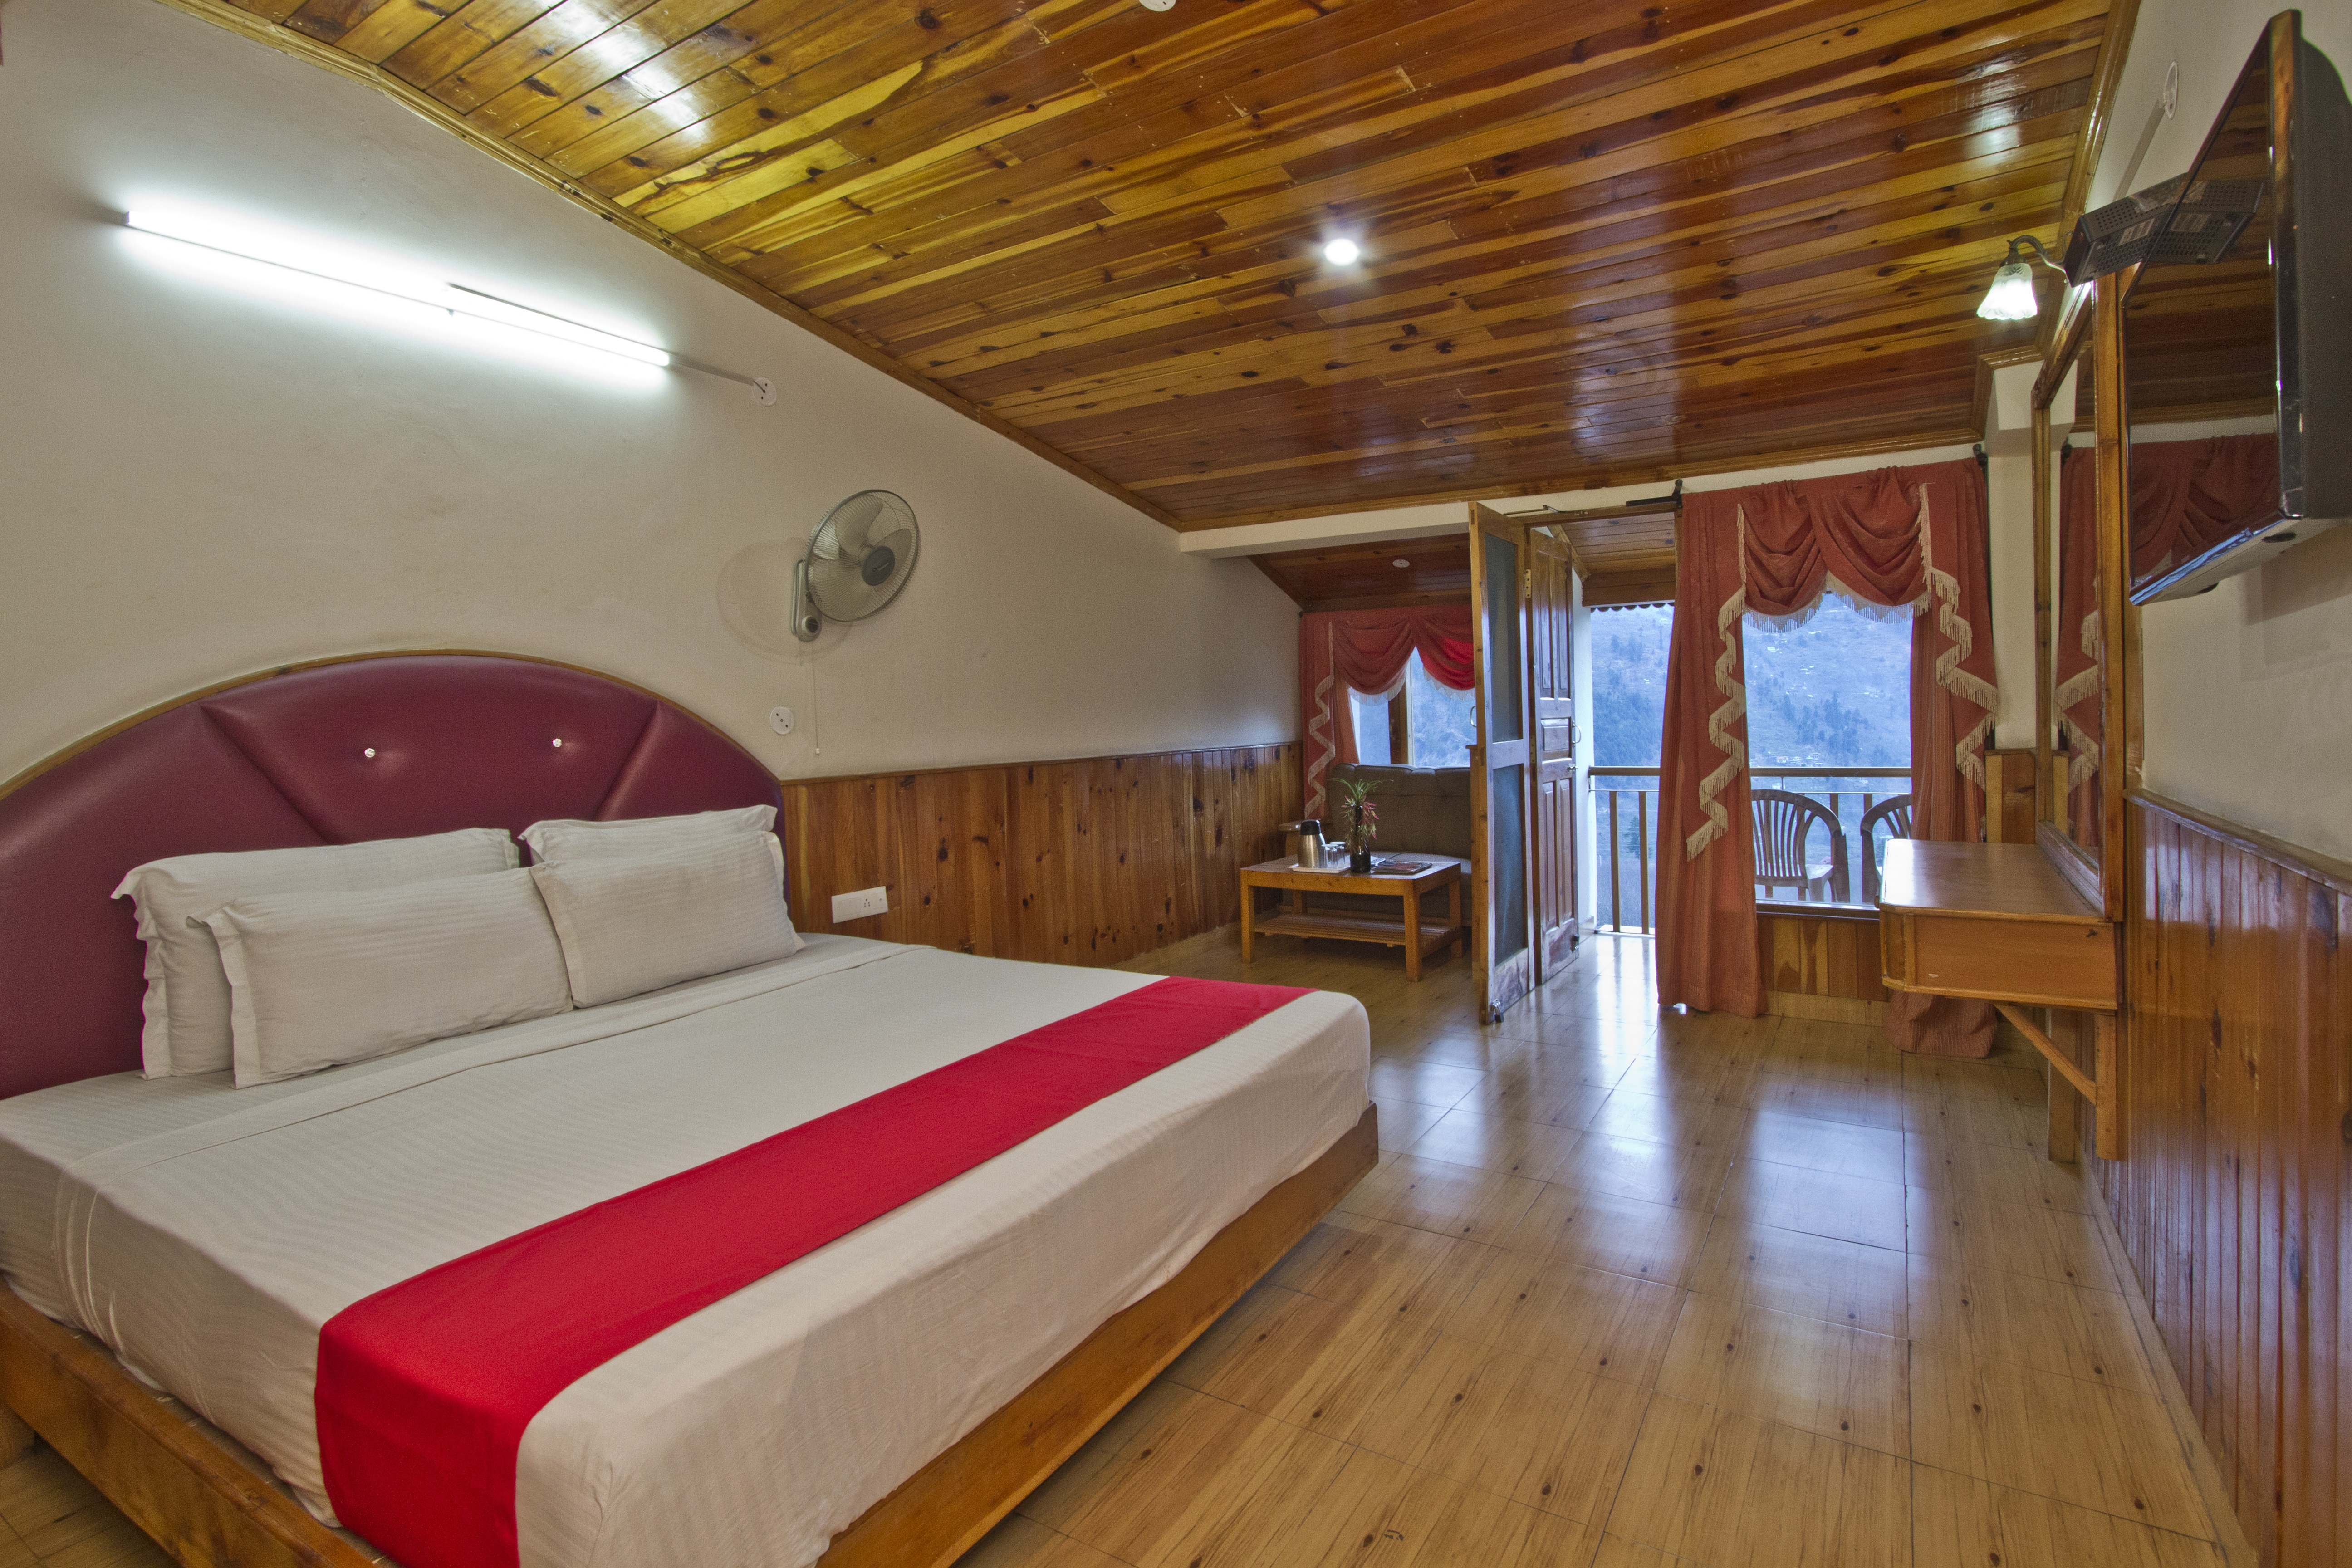 Super Deluxe Valley View Room, Sarthak Resorts - Budget Hotels in Manali